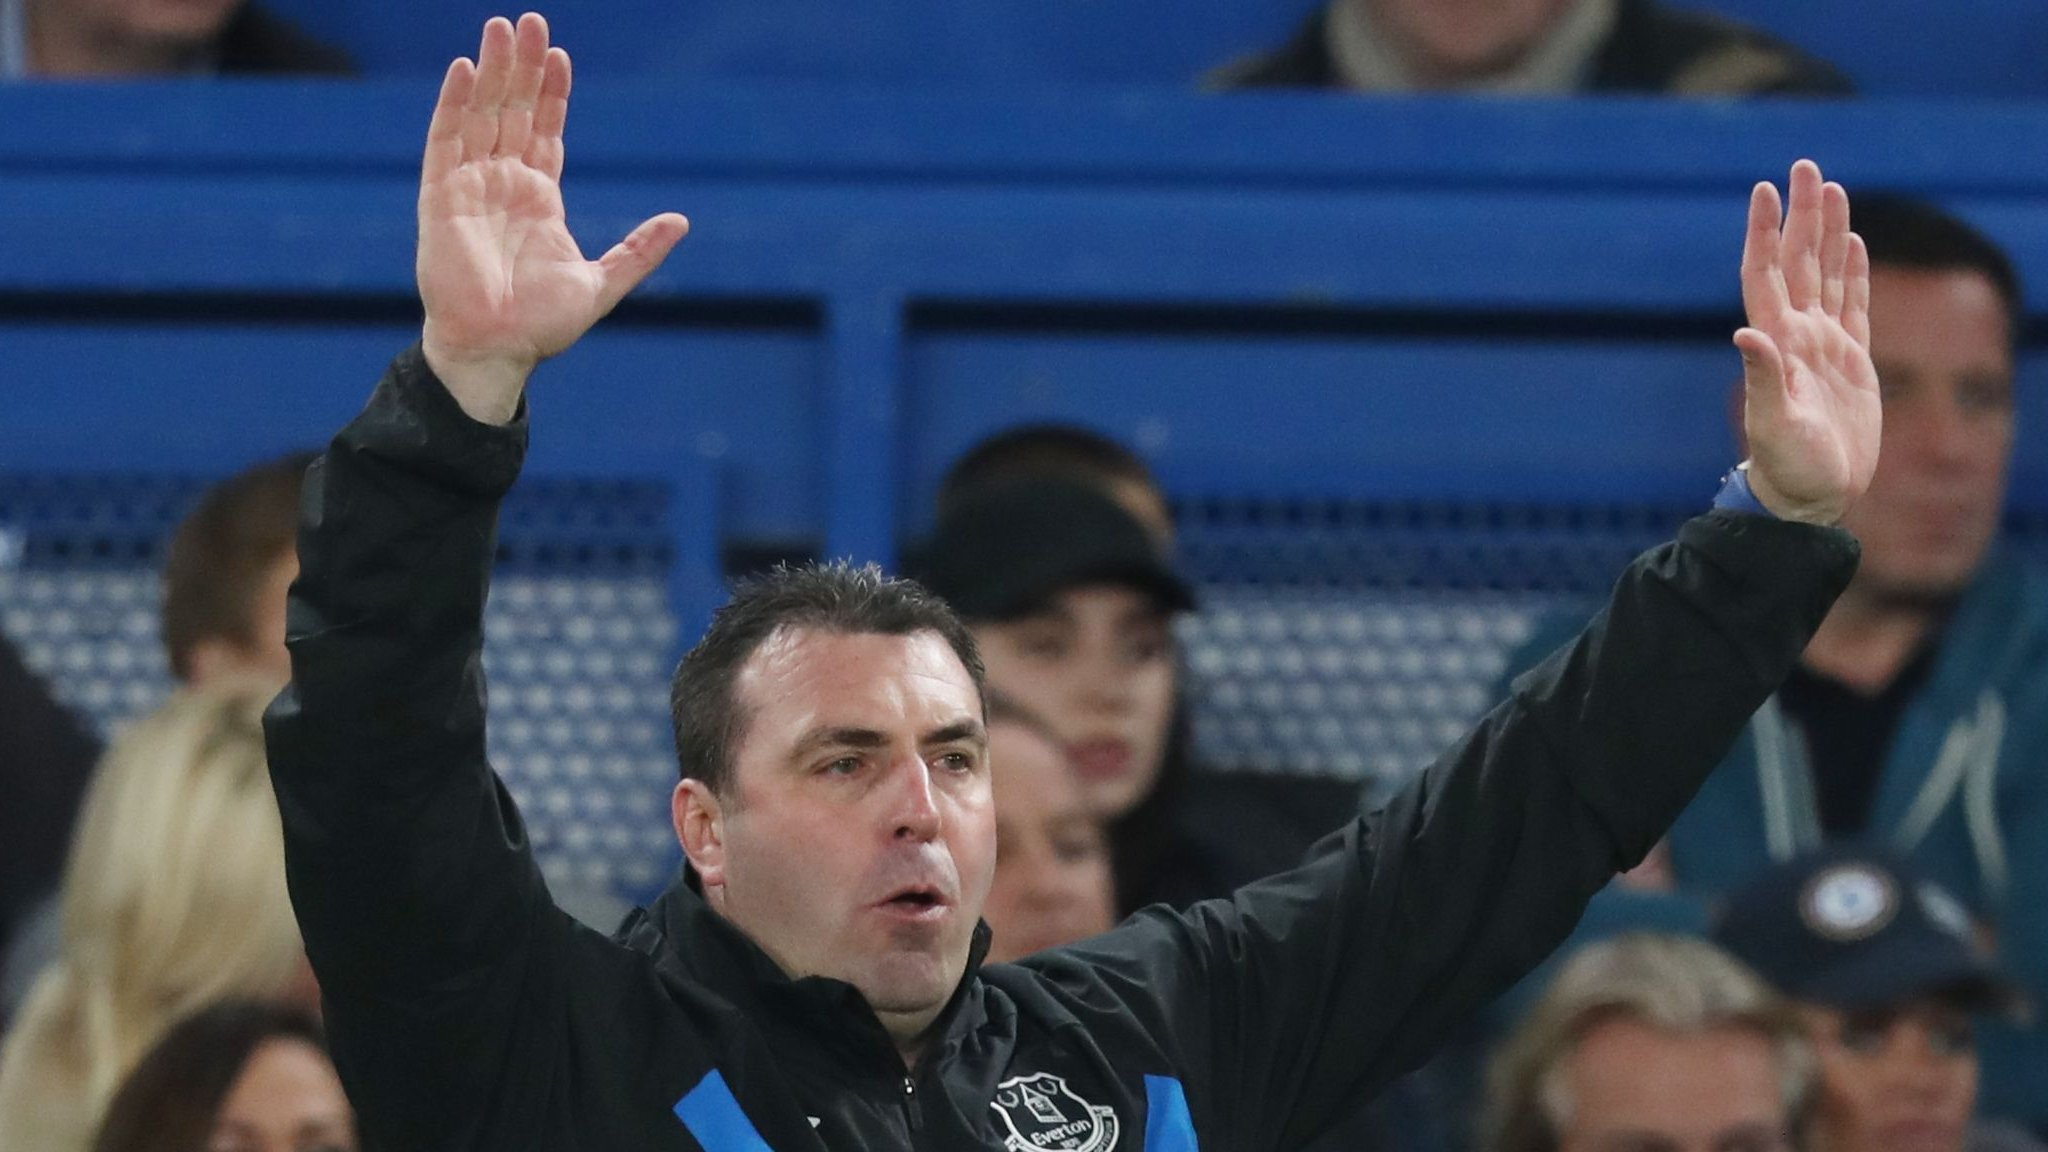 I'm surprised anyone would reject Everton manager role - Unsworth